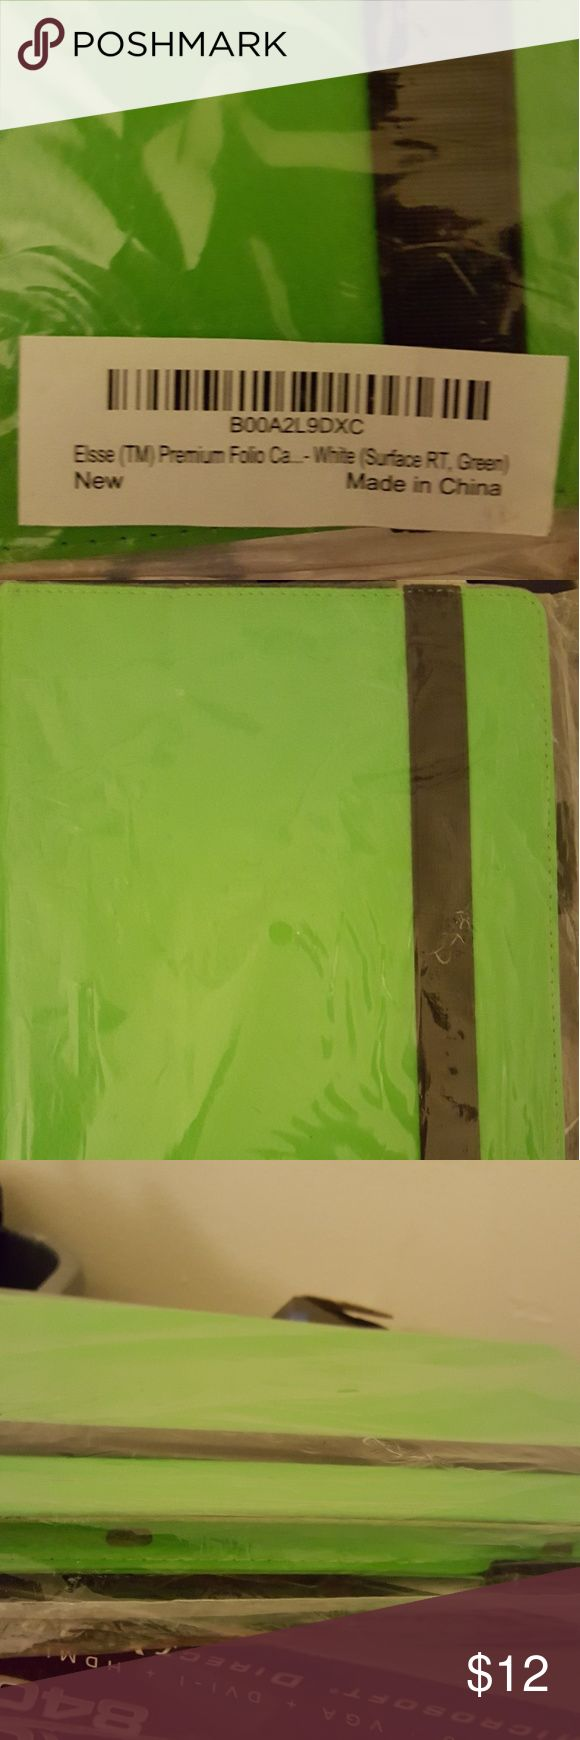 Brand New windows surface case Lime green. Pleather. Accessories Tablet Cases